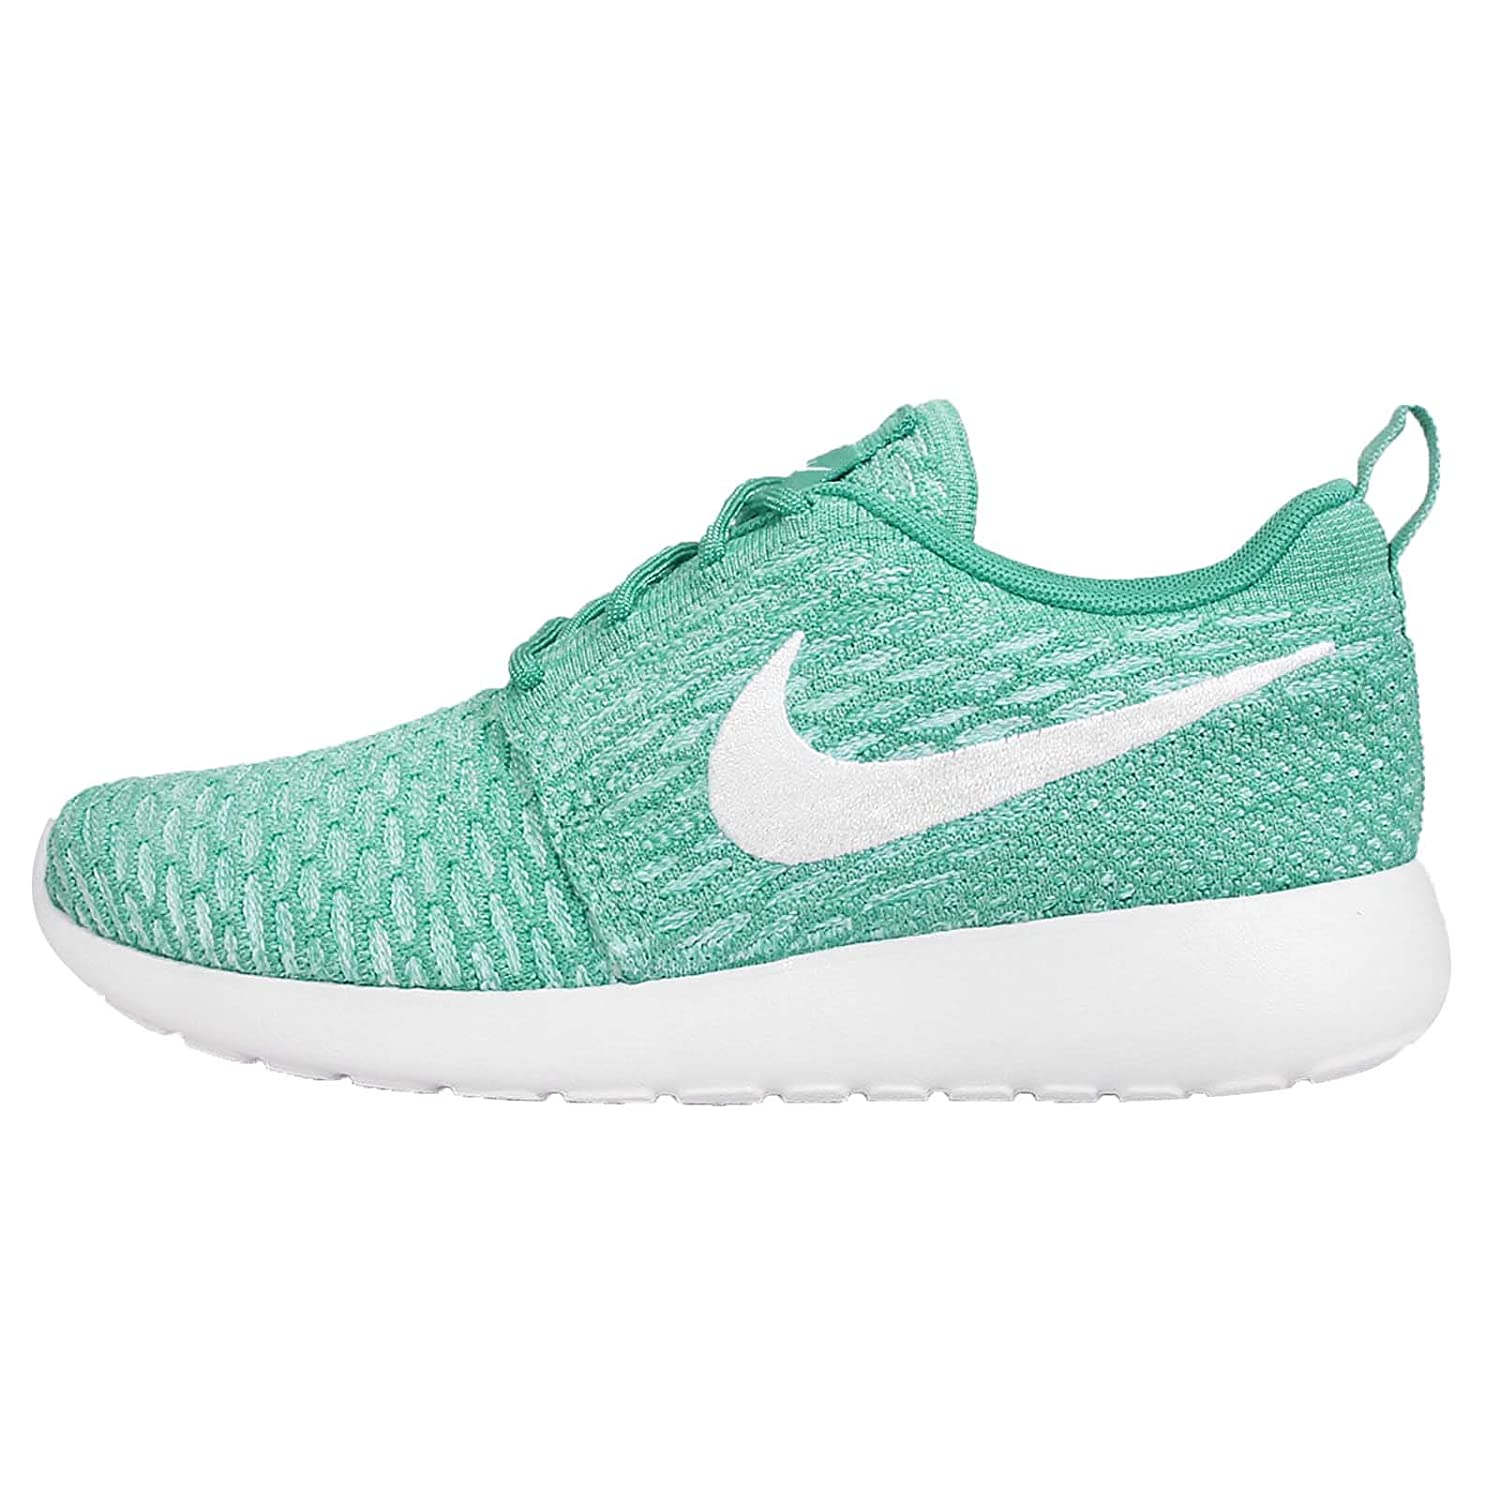 NIKE Womens Roshe One Flyknit Flyknit Colorblock Running Shoes B01MF55FTO 9.5 B(M) US|Blue